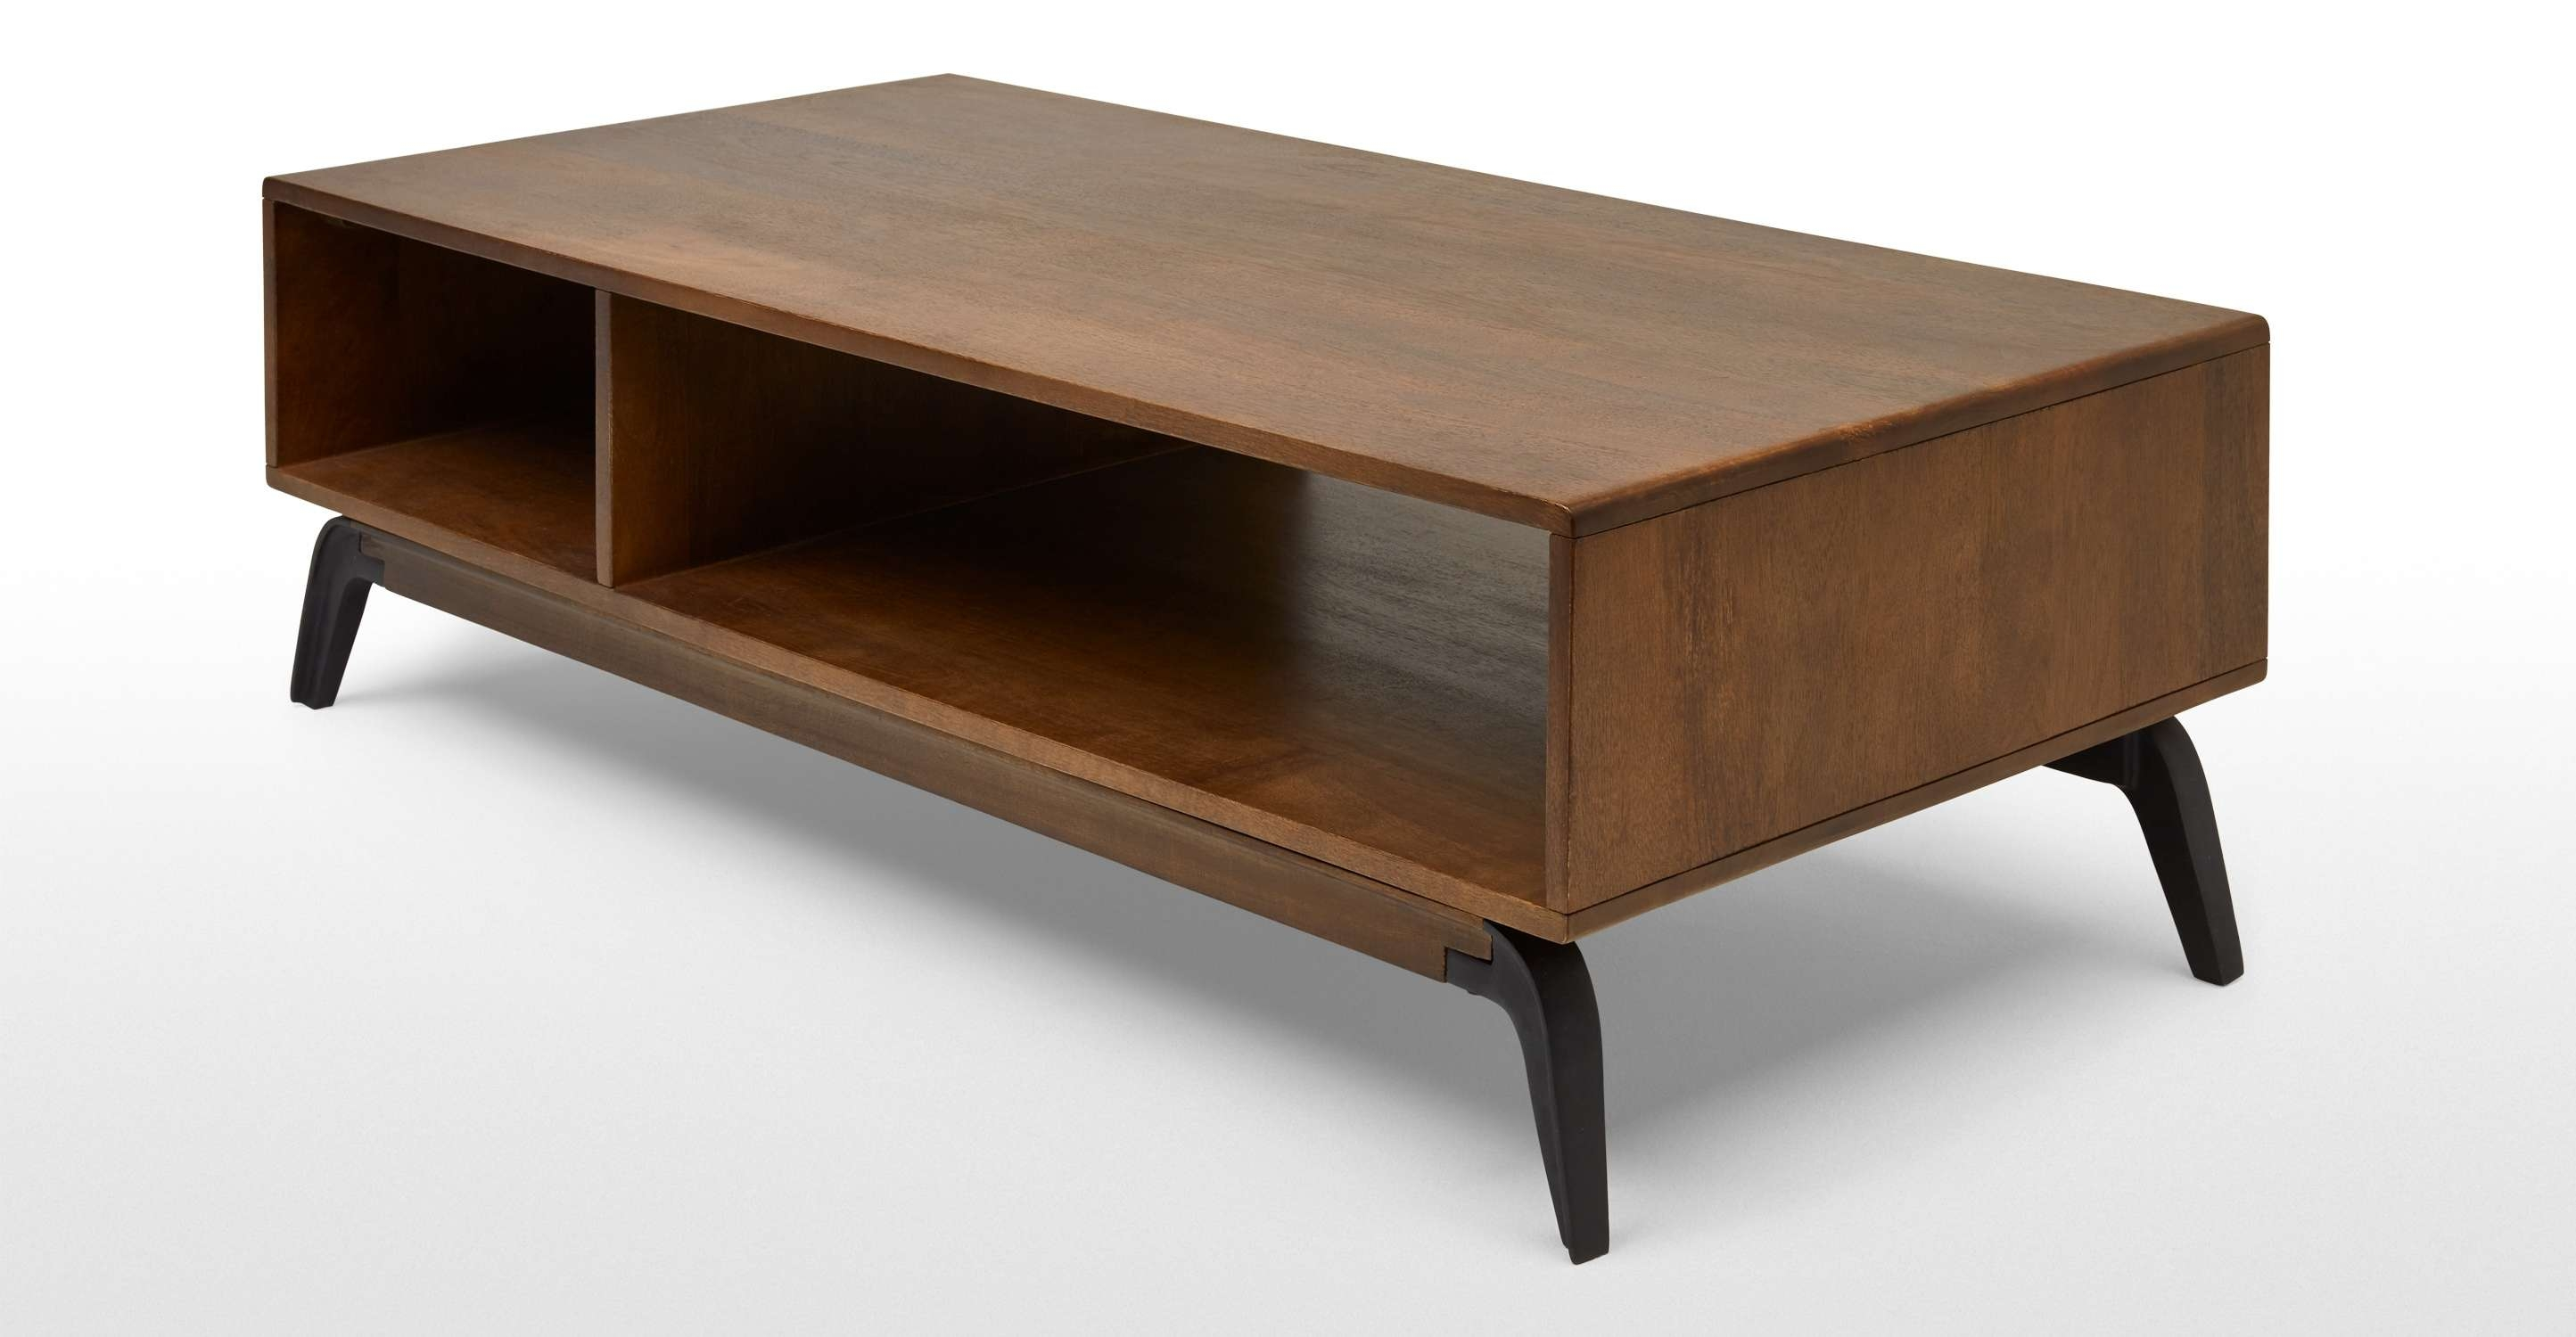 Widely Used Dark Mango Coffee Tables With Coffee Table : Mango Wood Coffee Table Stone Coffee Table' Antique (View 20 of 20)